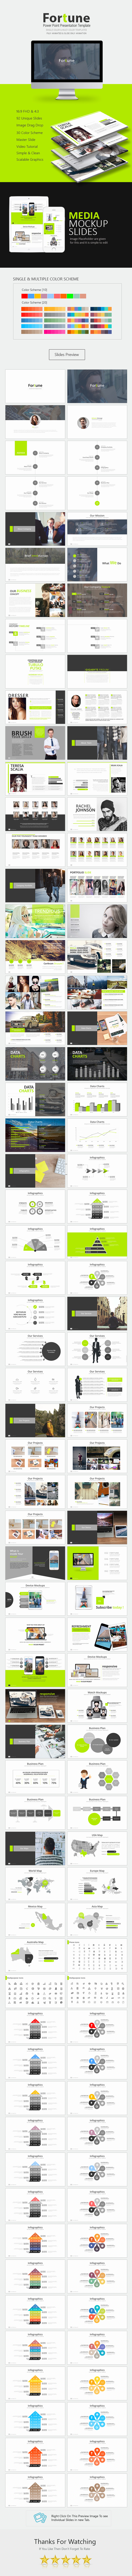 Fortune Power Point Presentation - Business PowerPoint Templates